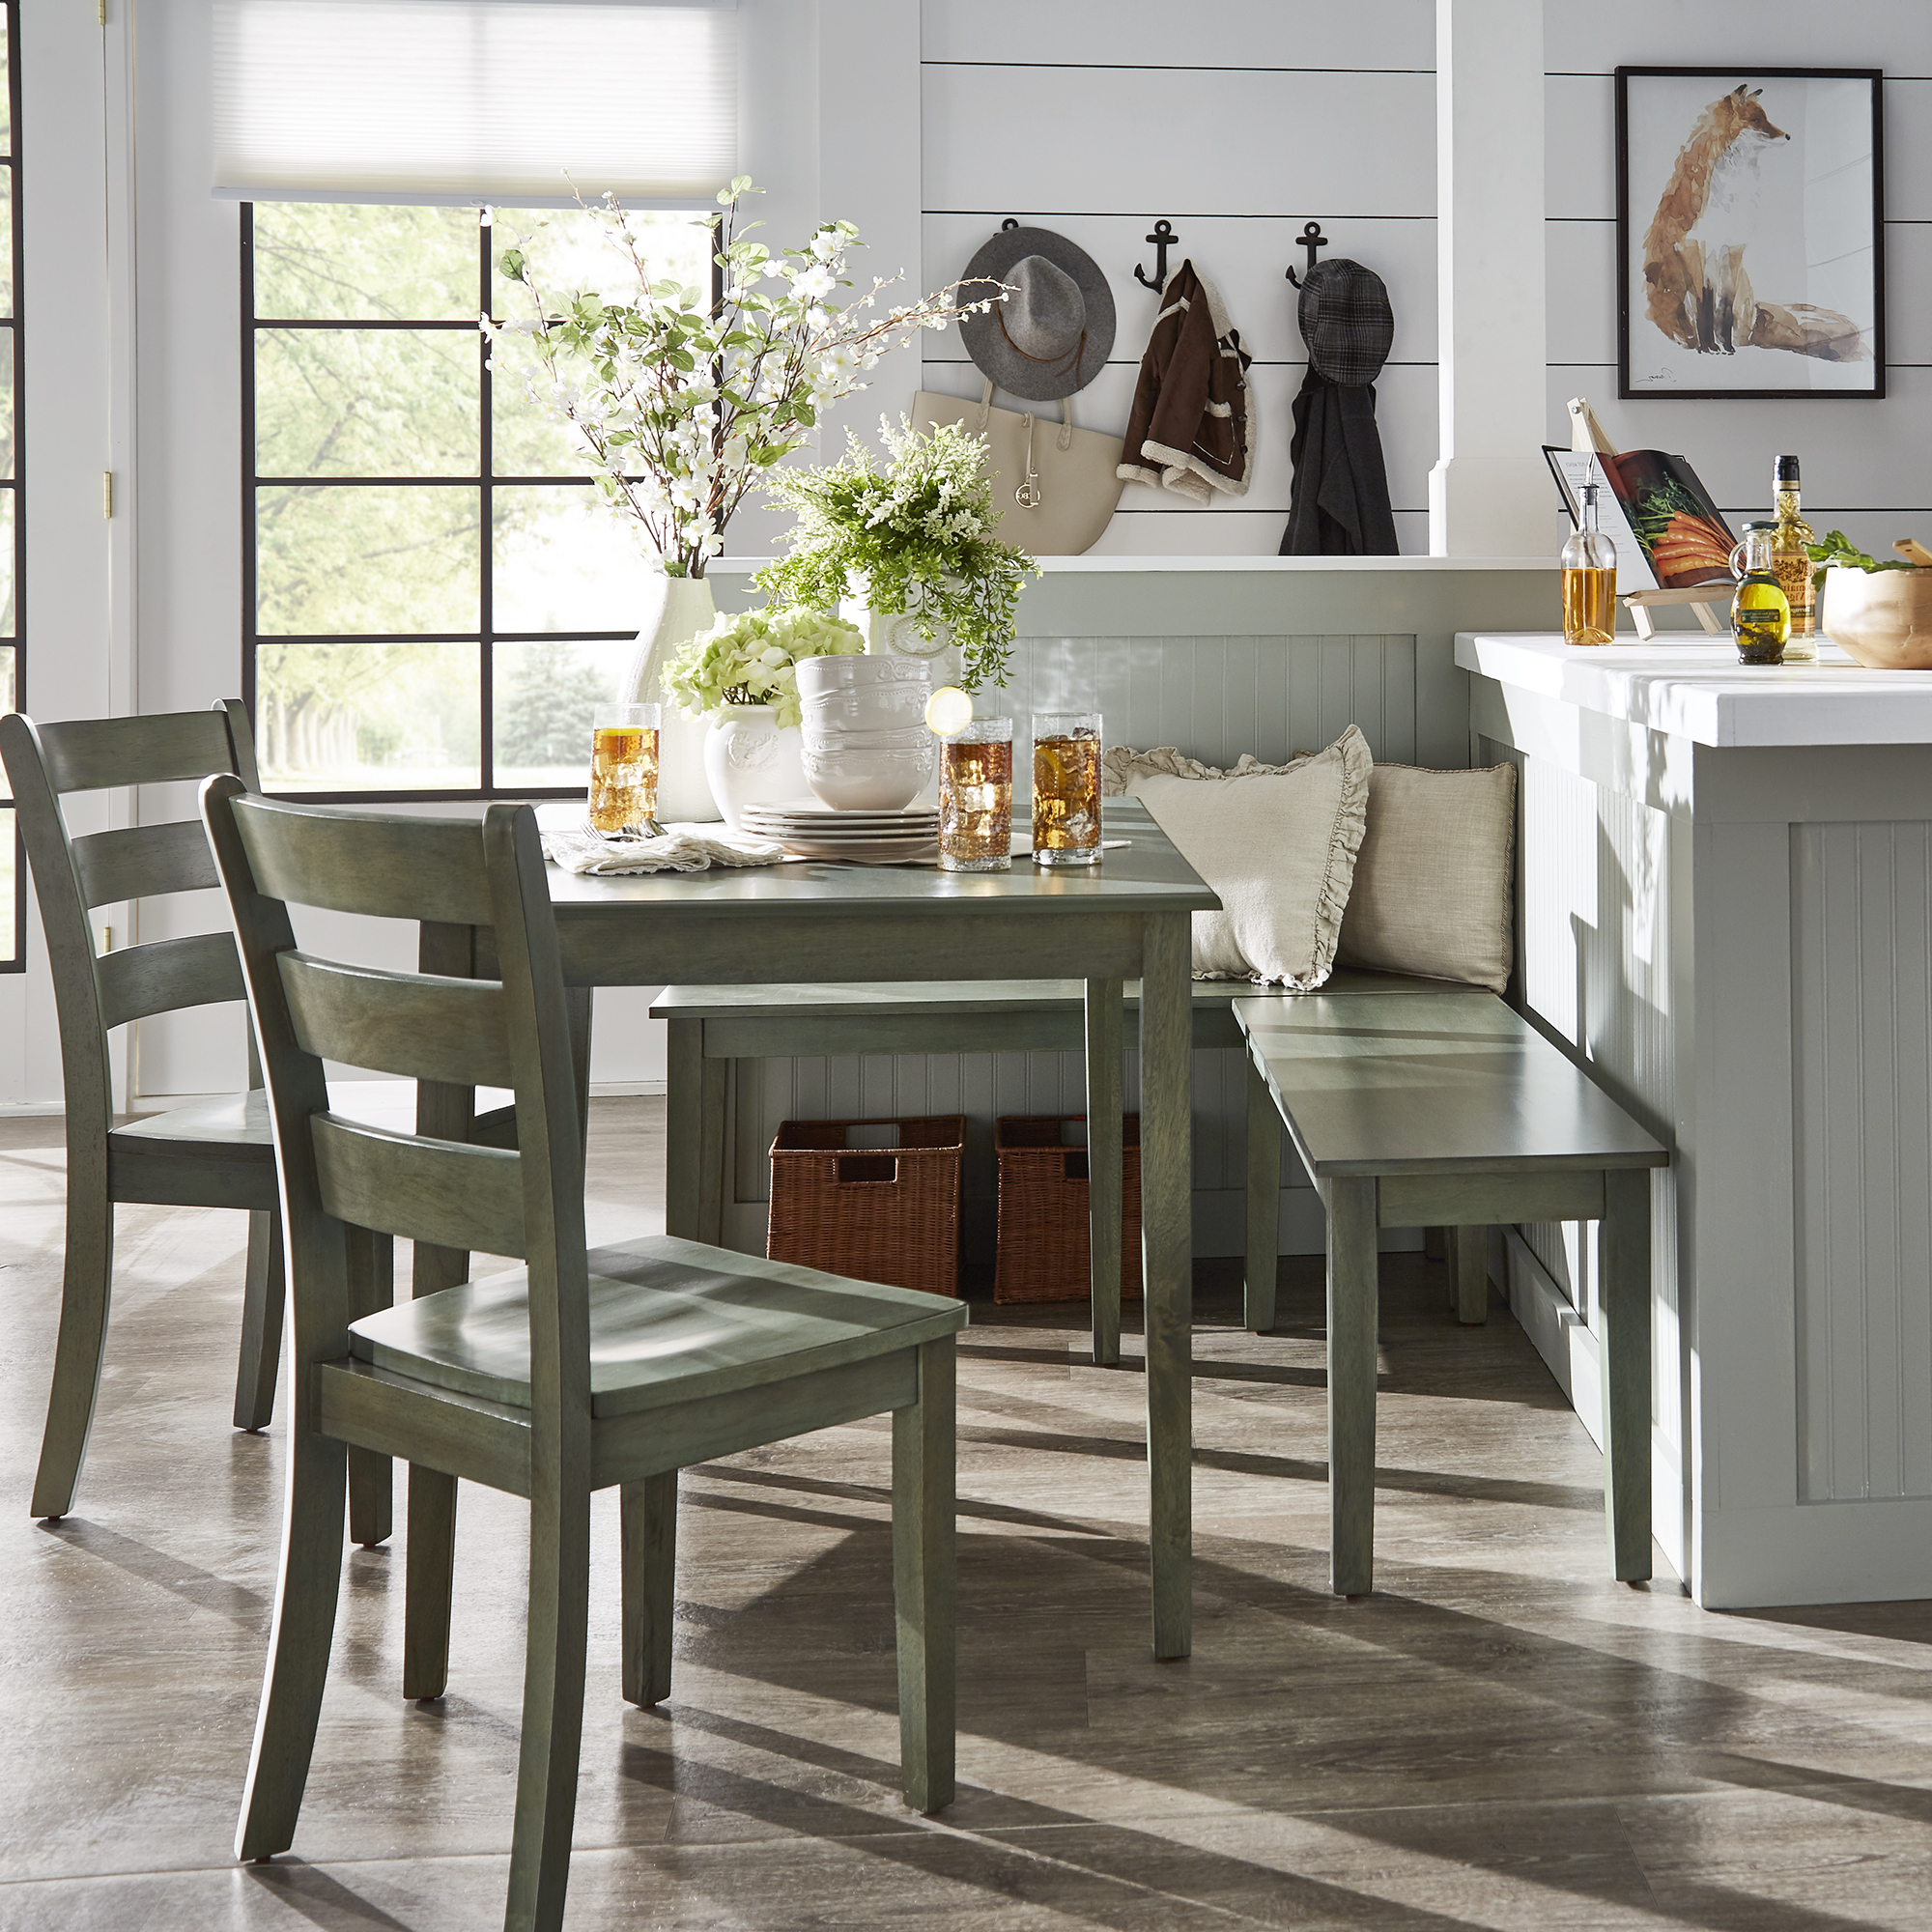 Preferred Weston Home Lexington 5 Piece Breakfast Nook Dining Set, Rectangular Pertaining To 5 Piece Breakfast Nook Dining Sets (View 10 of 25)